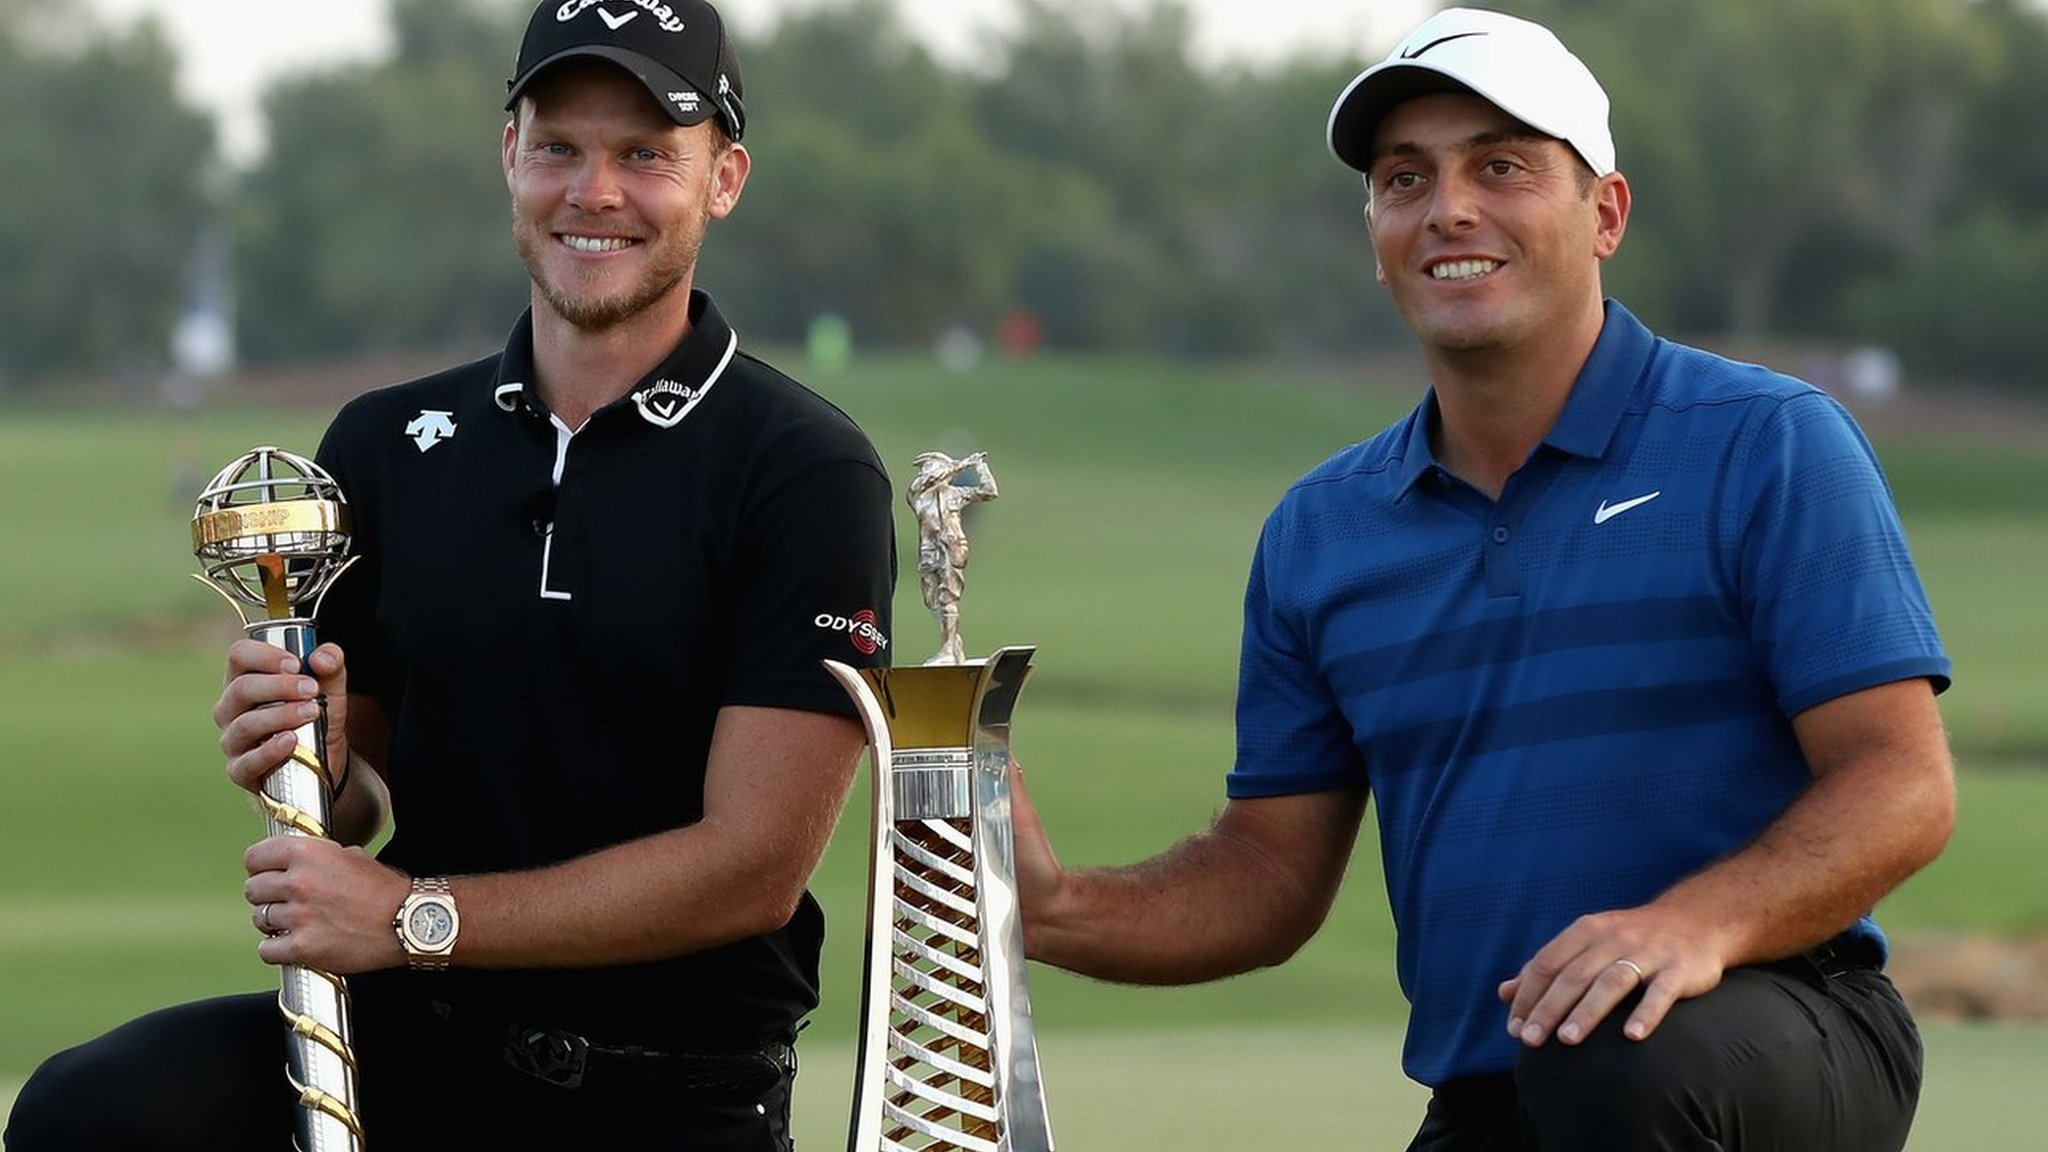 Race to Dubai: Biggest top prize in golf of £2.3m announced by European Tour